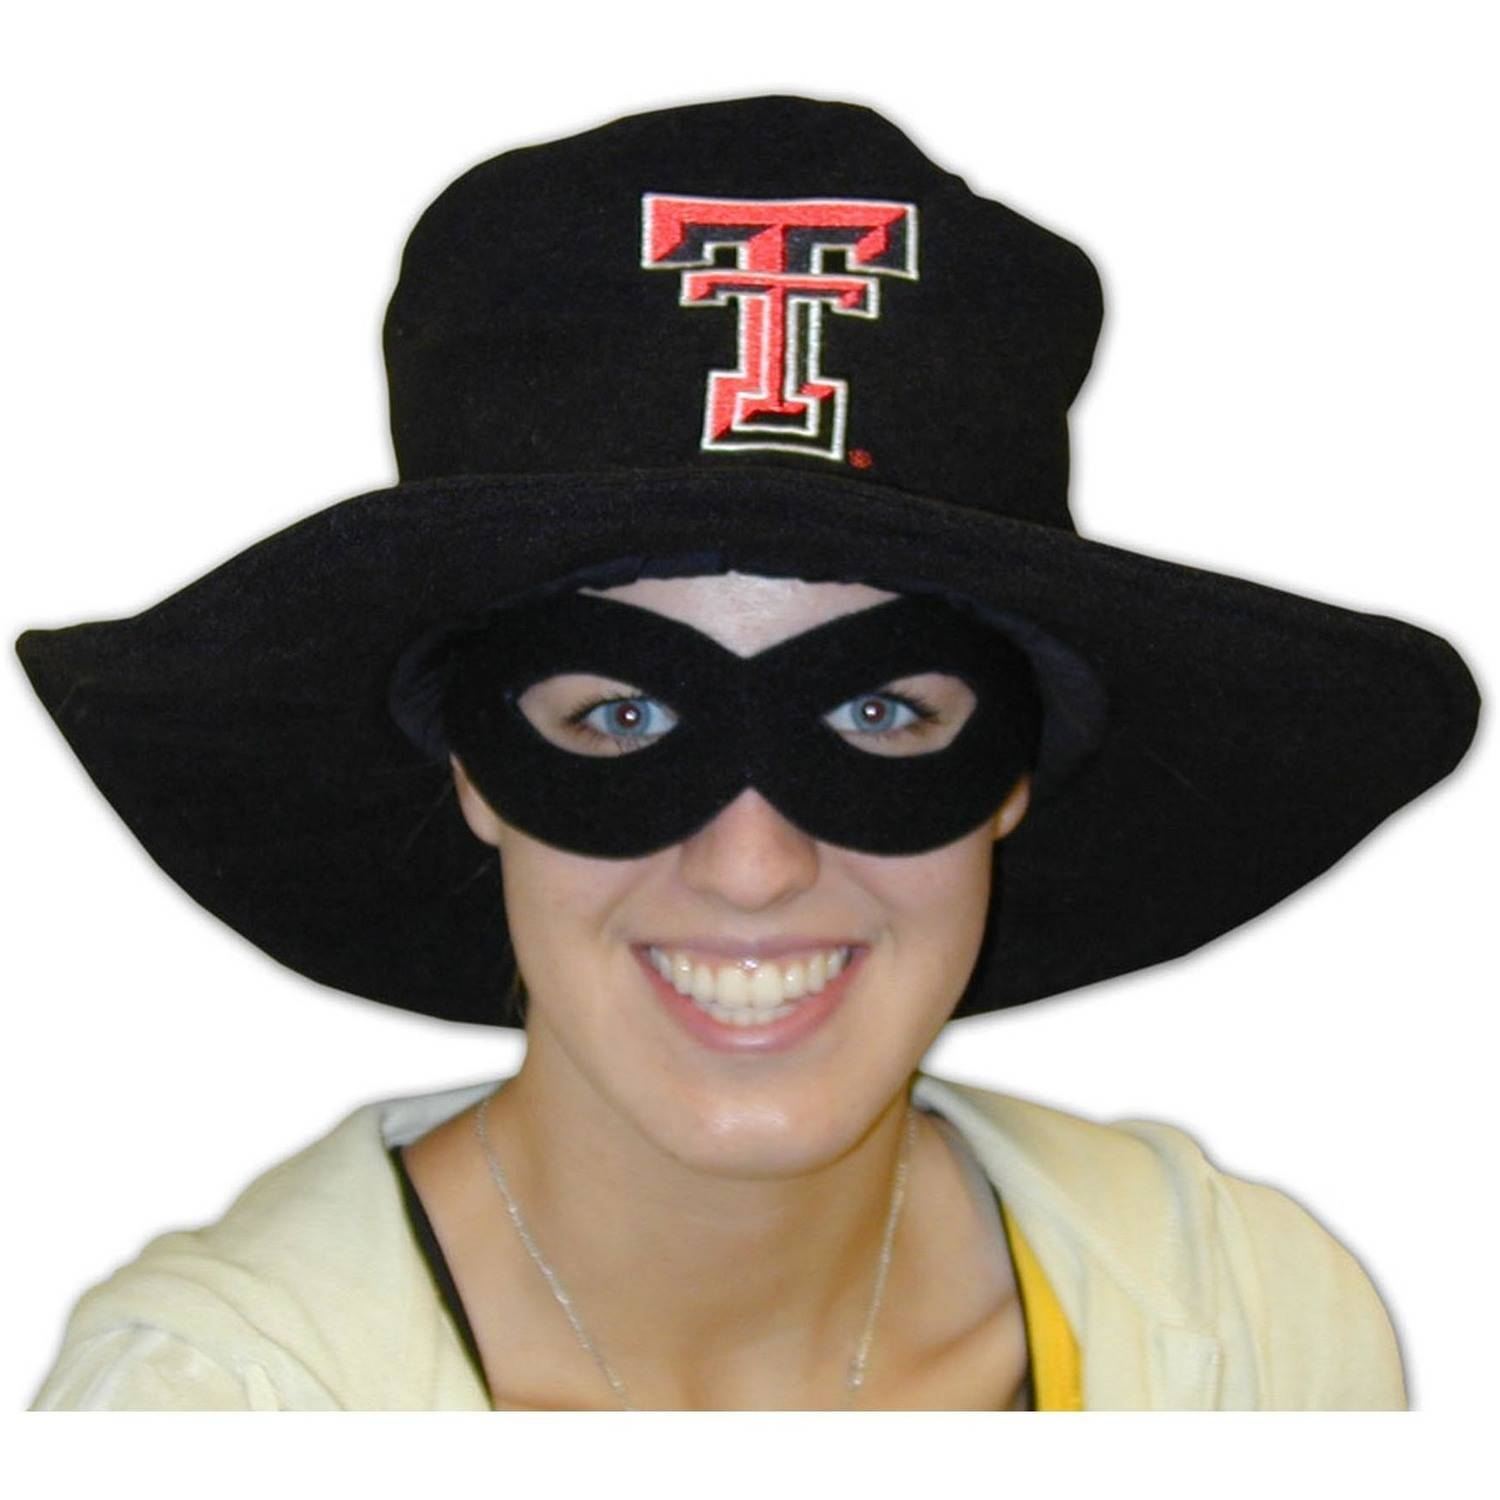 011-08 Texas Tech Red Raiders Hat by Generic